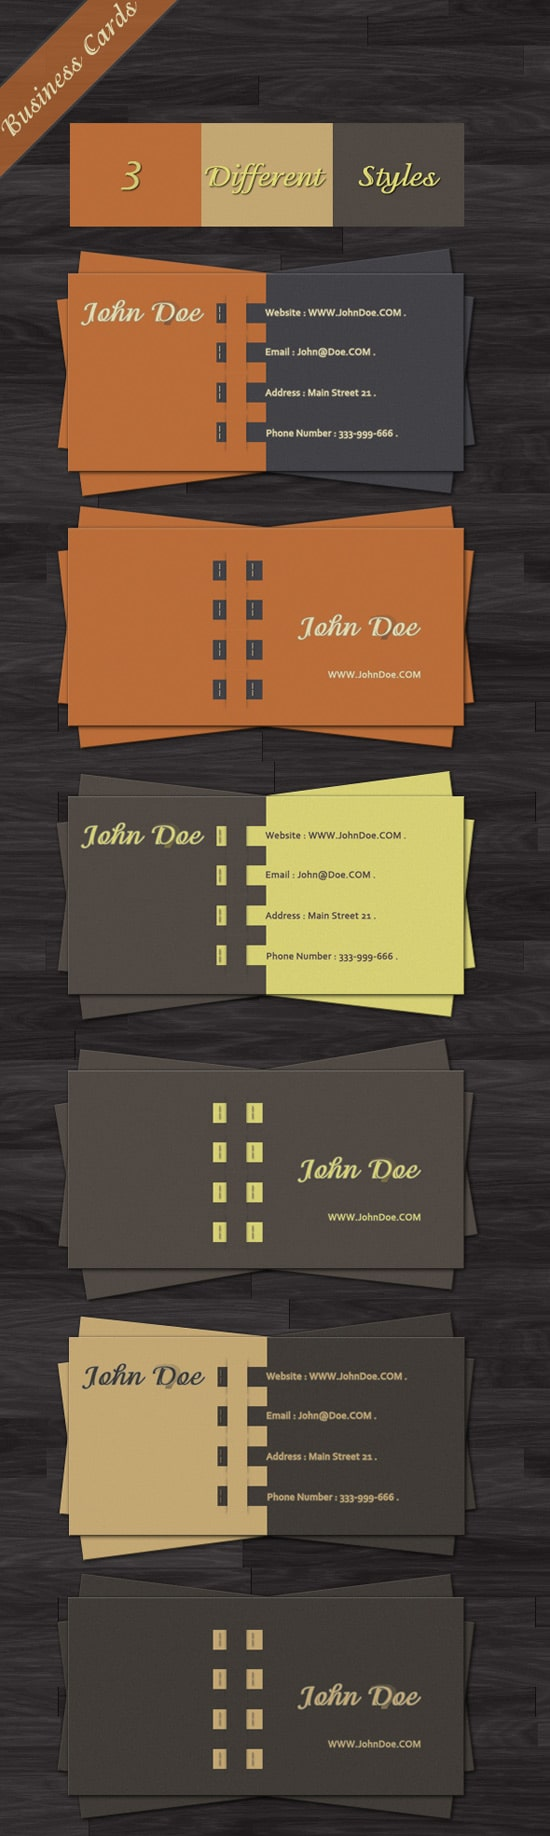 100 free business card templates designrfix business is business free psd vector business card cheaphphosting